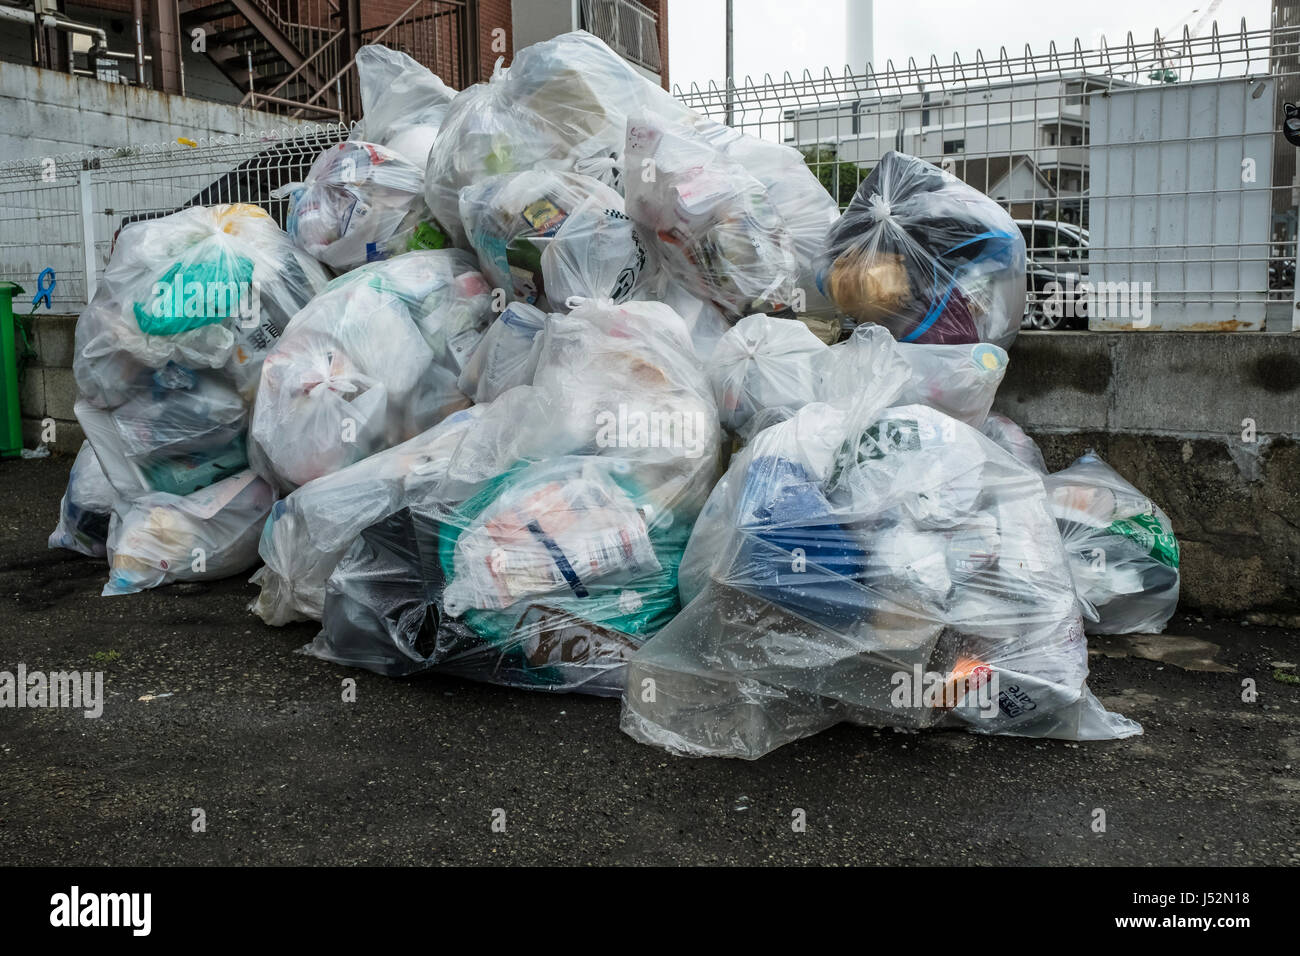 Plastic rubbish bags in a car park waiting to be collected in Tokyo - Stock Image